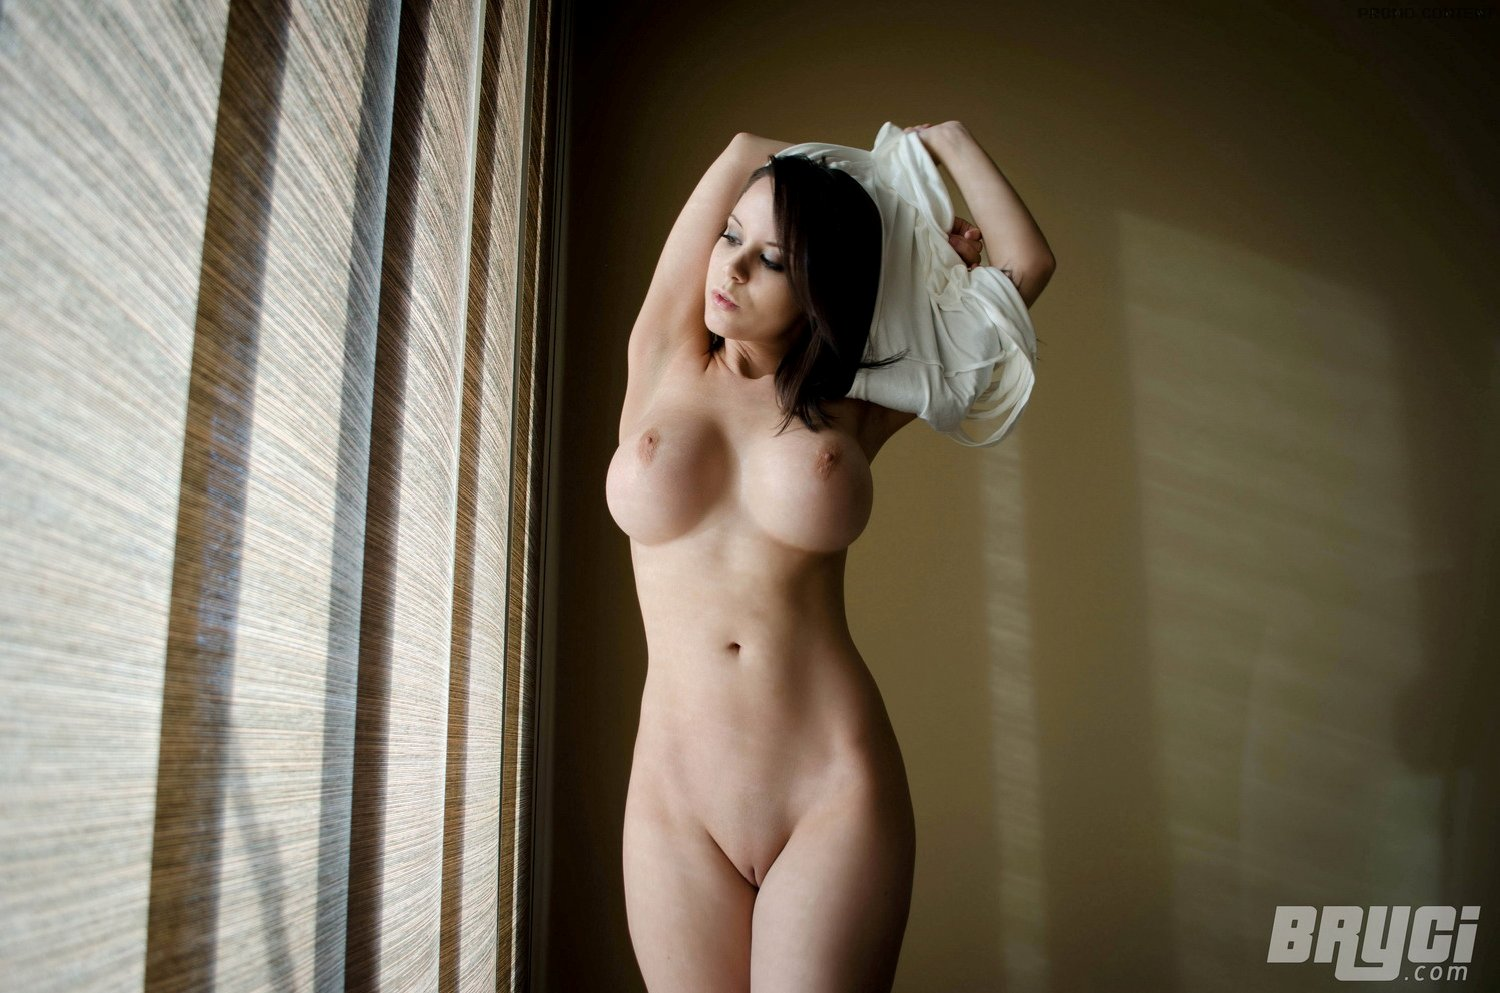 naked pictures of the girl from big bang theory